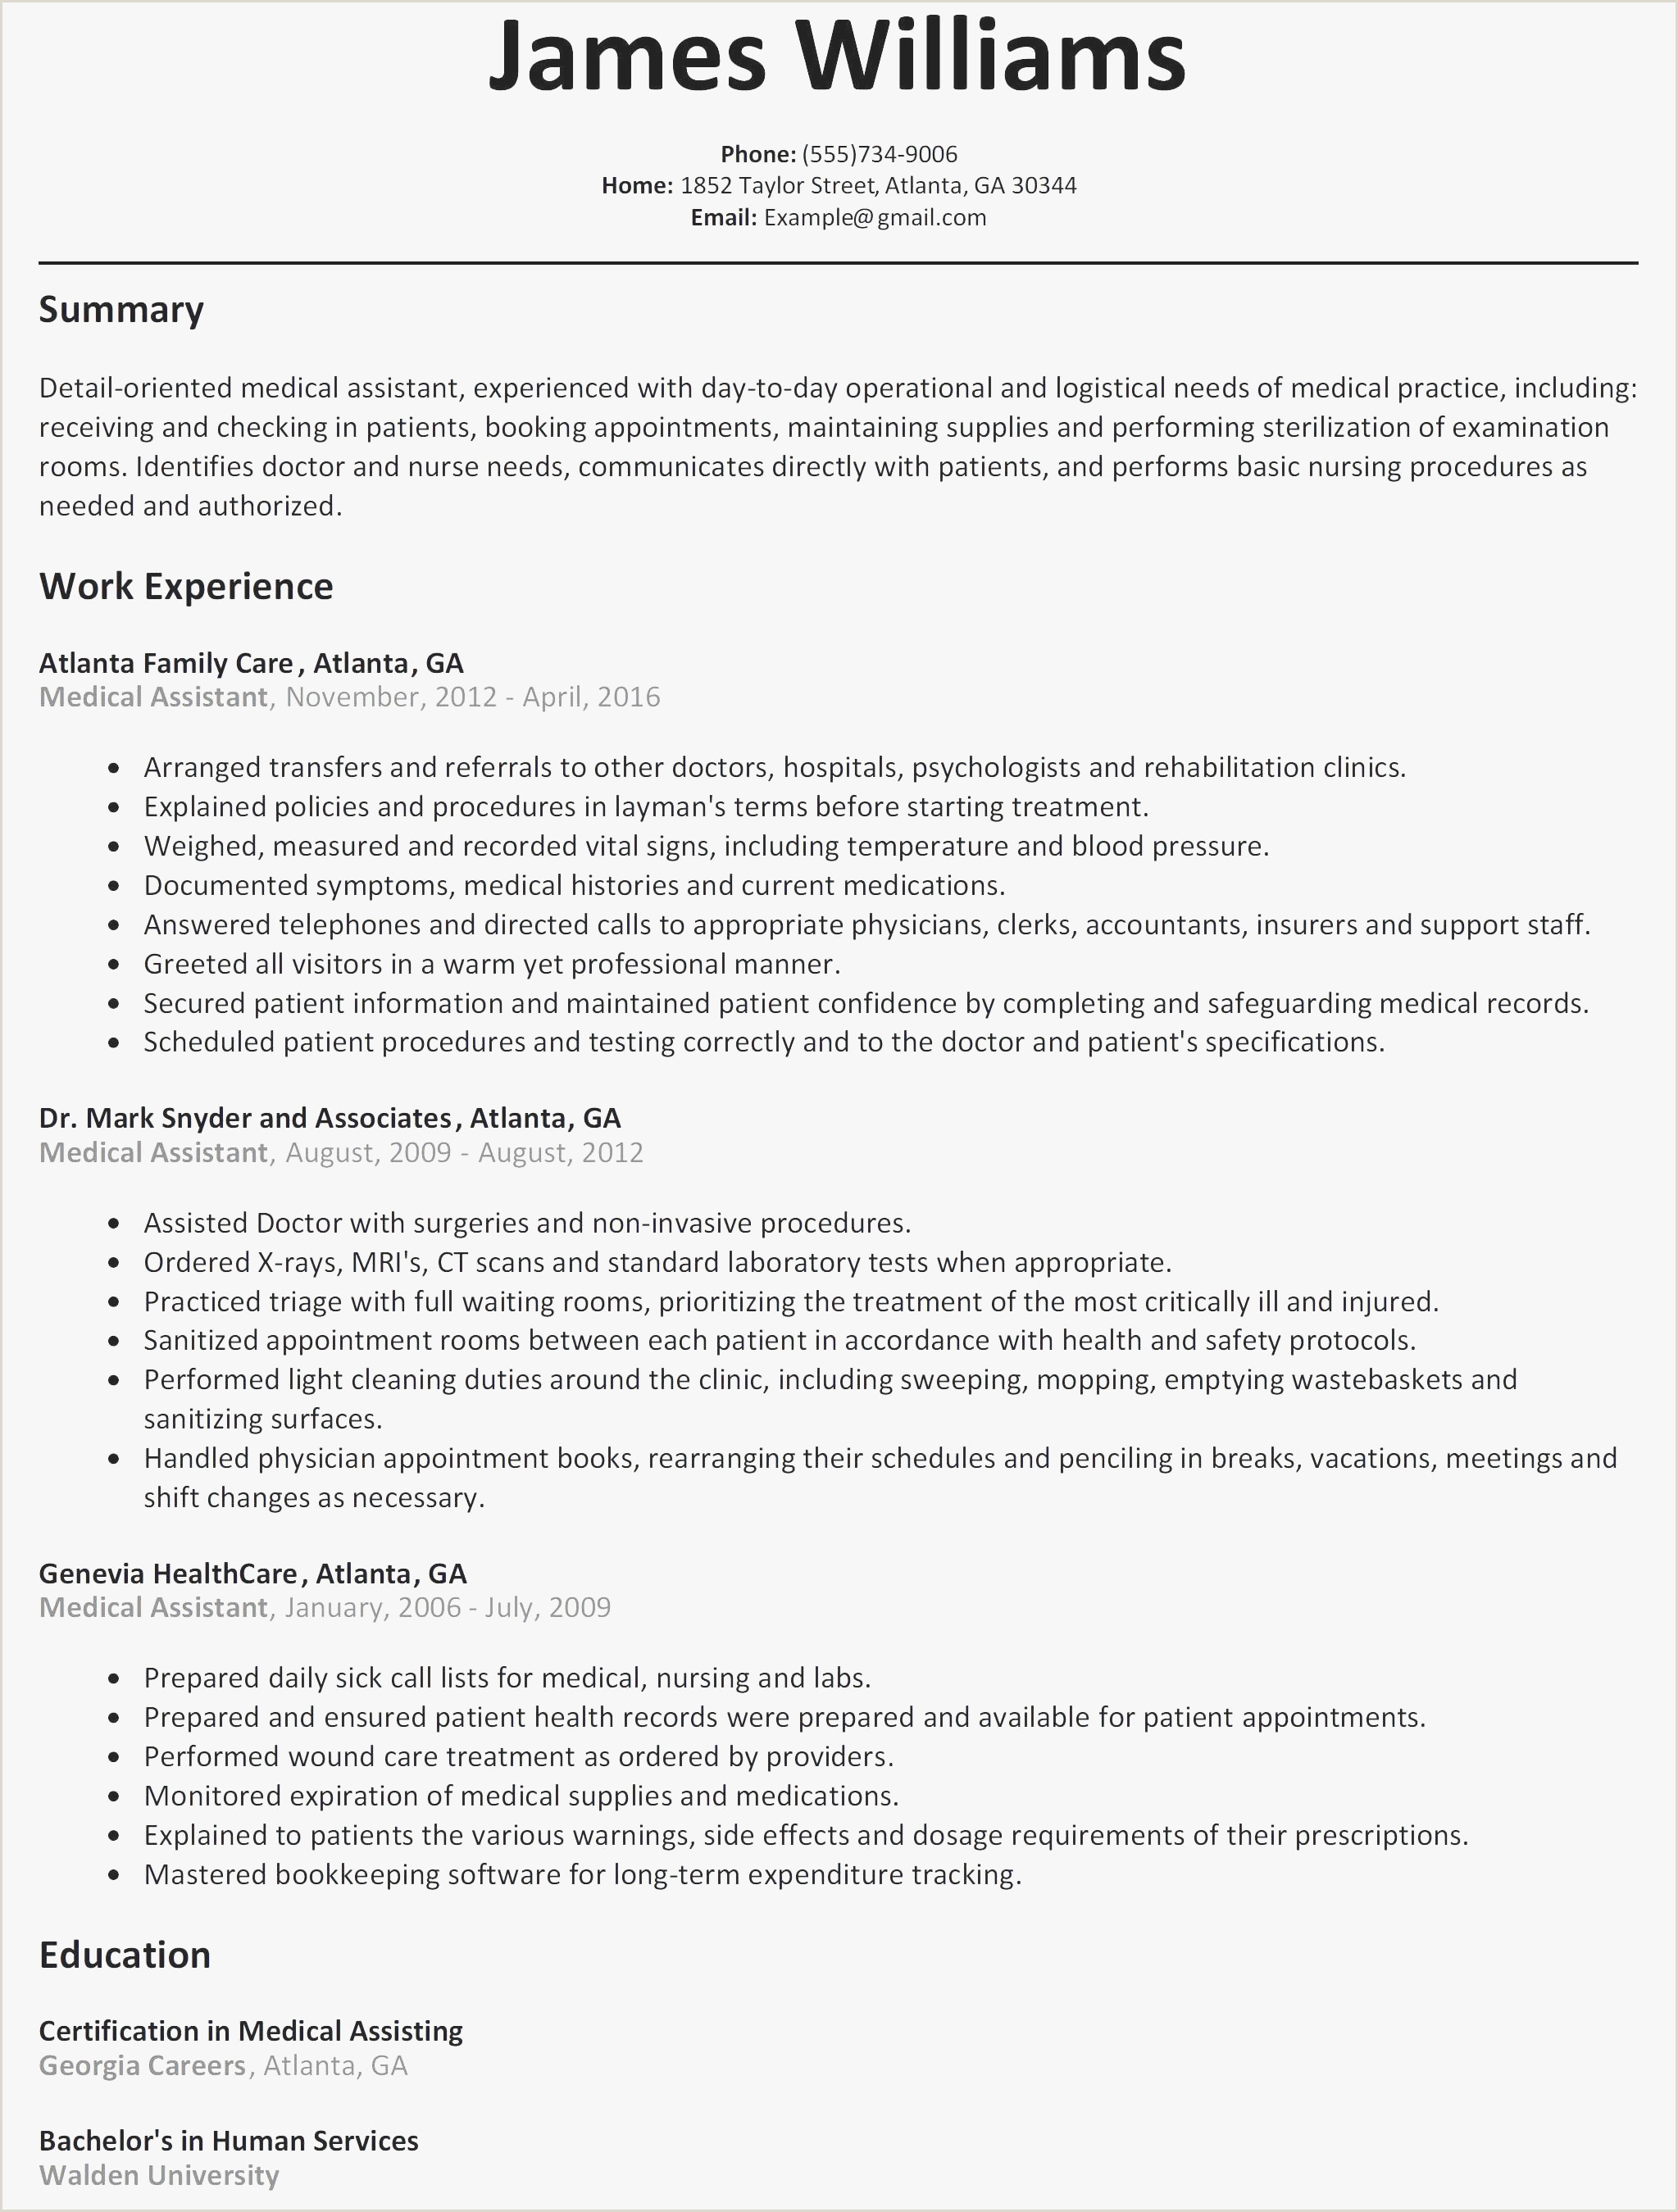 Best Professional Cv format 2019 35 Best Cv Templates Word